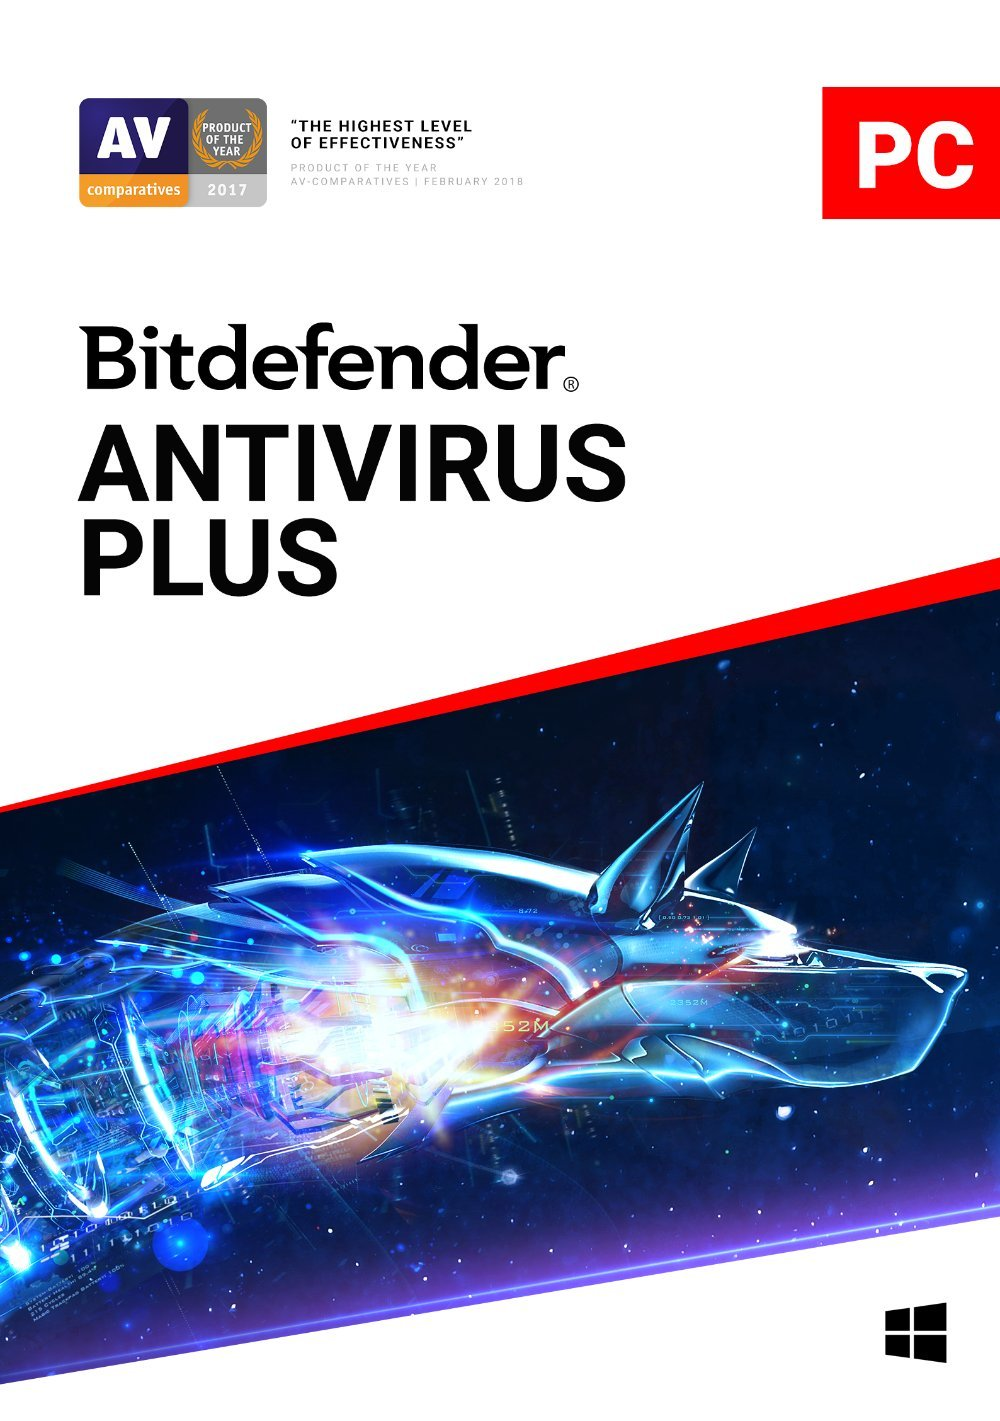 Bitdefender Antivirus Plus - 3 Devices | 2 year Subscription | PC Activation Code by email by Bitdefender